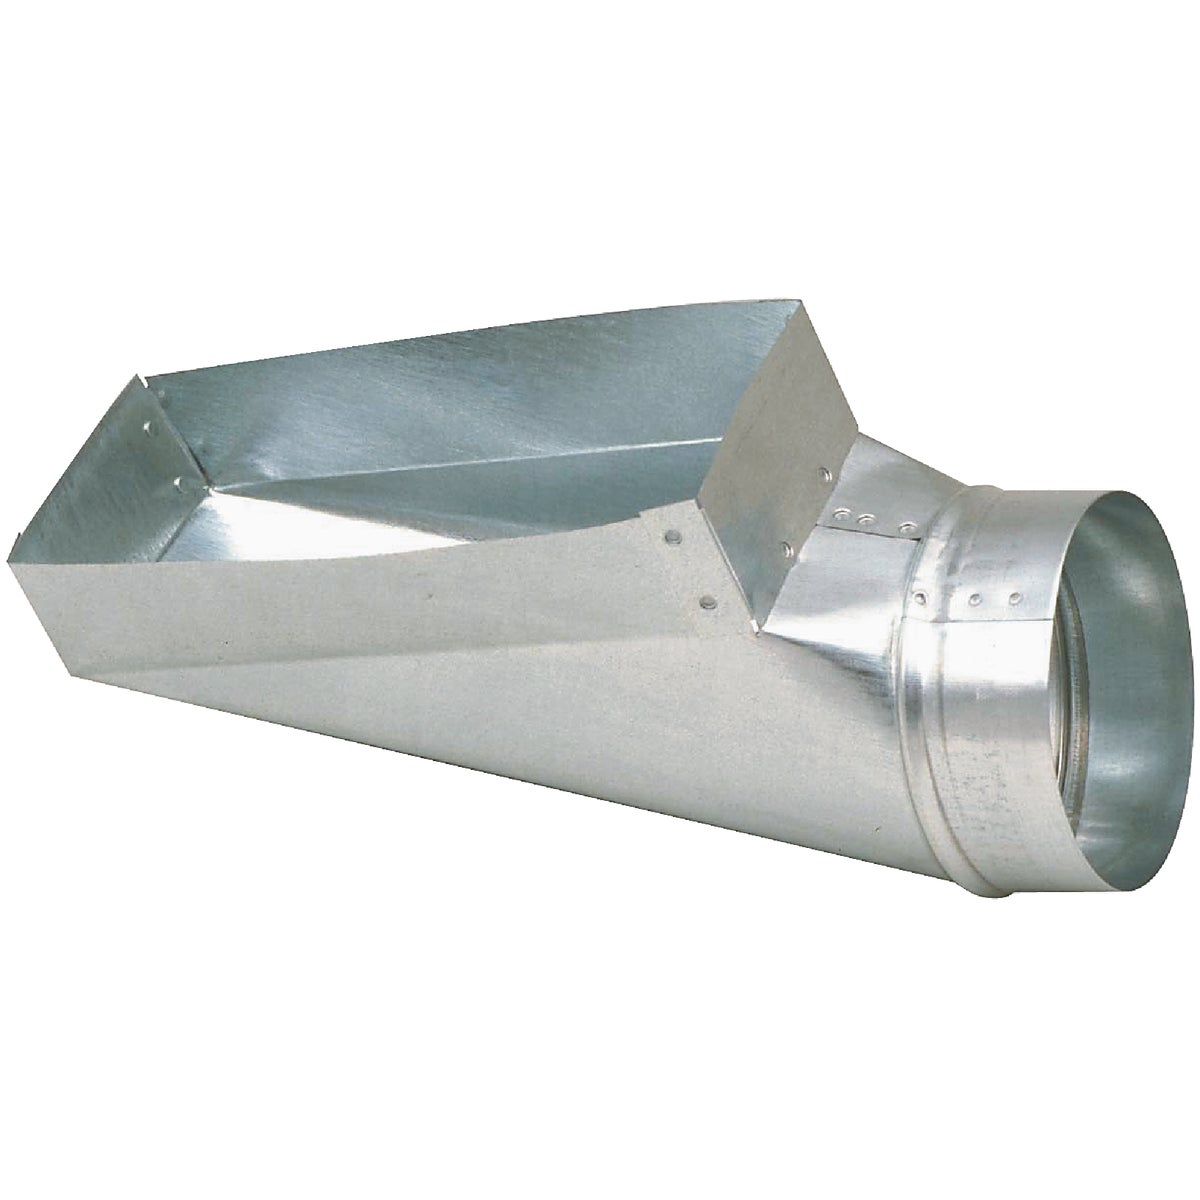 2-1/4X12X6 END BOOT - GV0662-C by Imperial Mfg Group